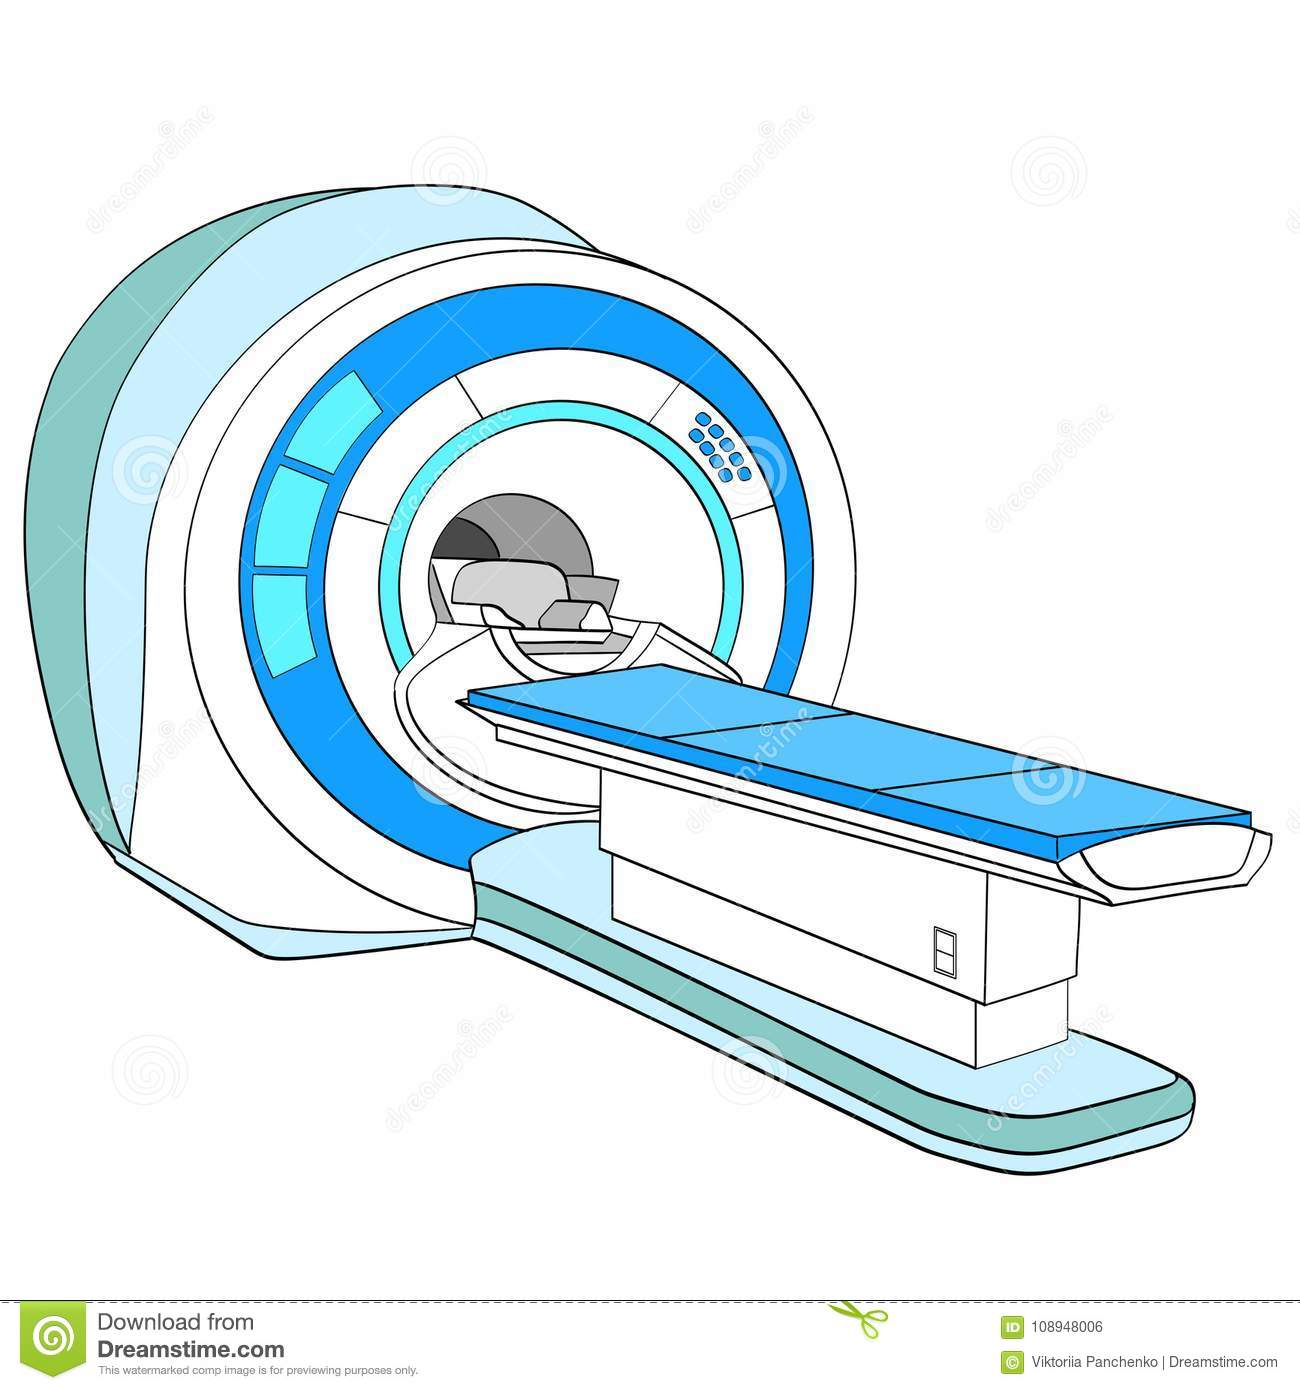 hight resolution of ct scanner computerized tomography scanner mri magnetic resonance imaging machine medical equipment object on white background vector